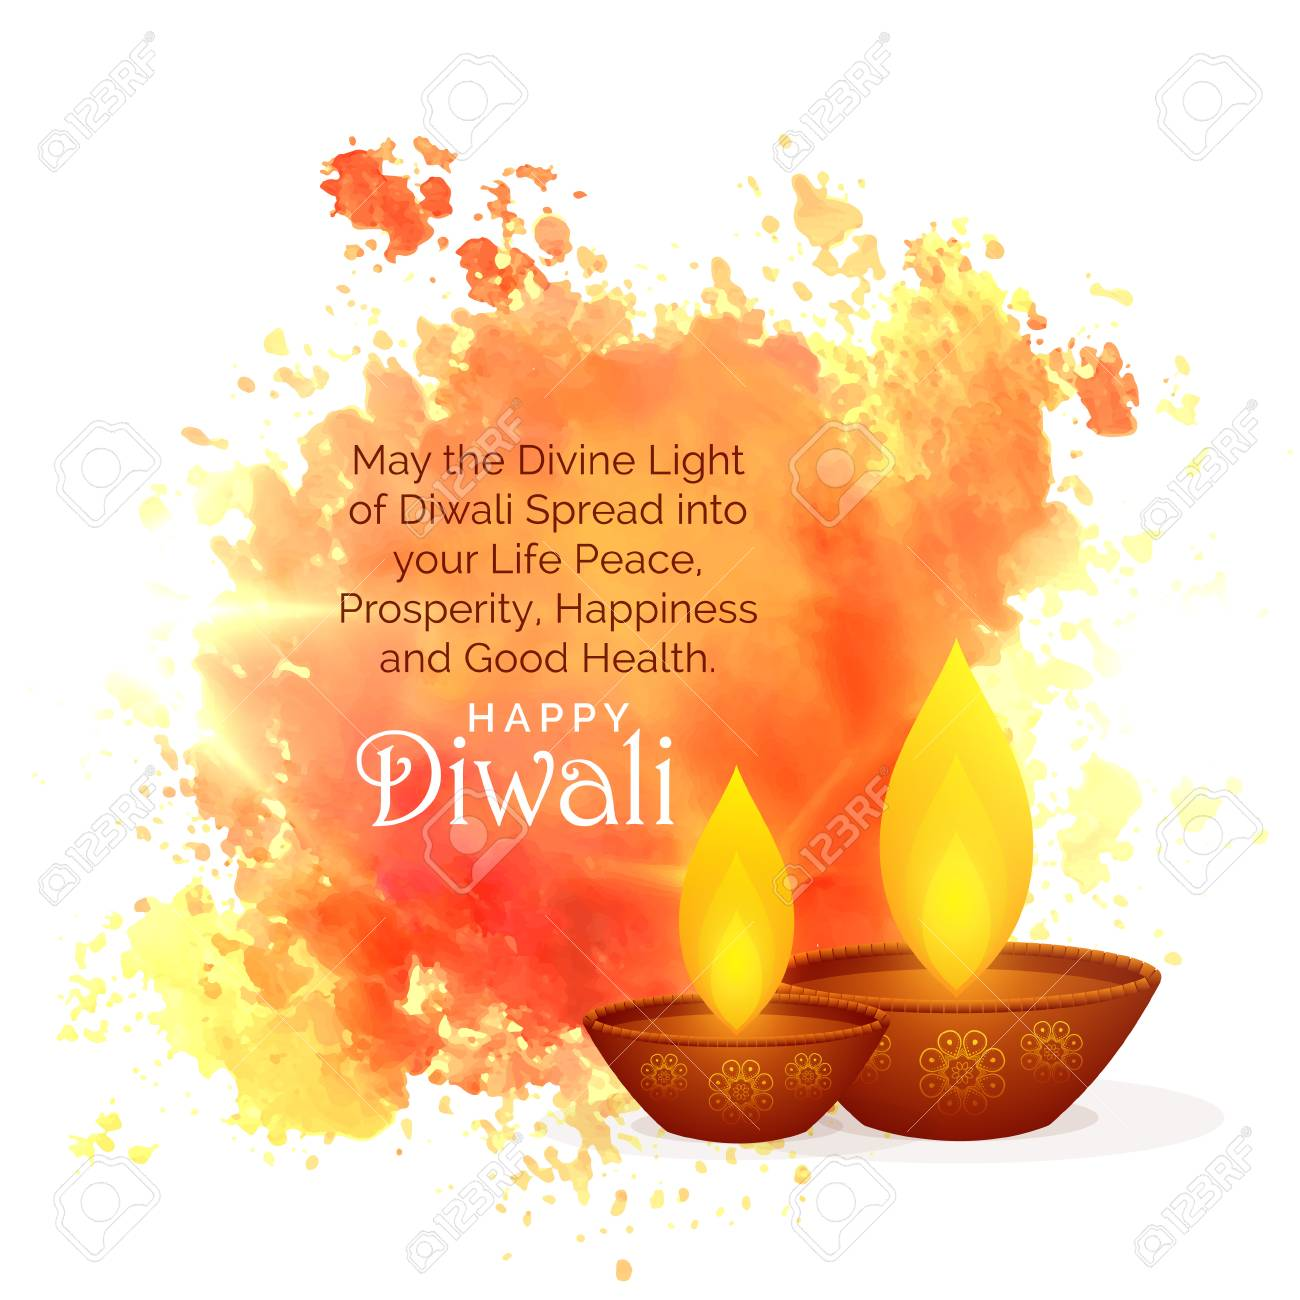 awesome diwali festival wishes with watercolor splash and diya - 86925008